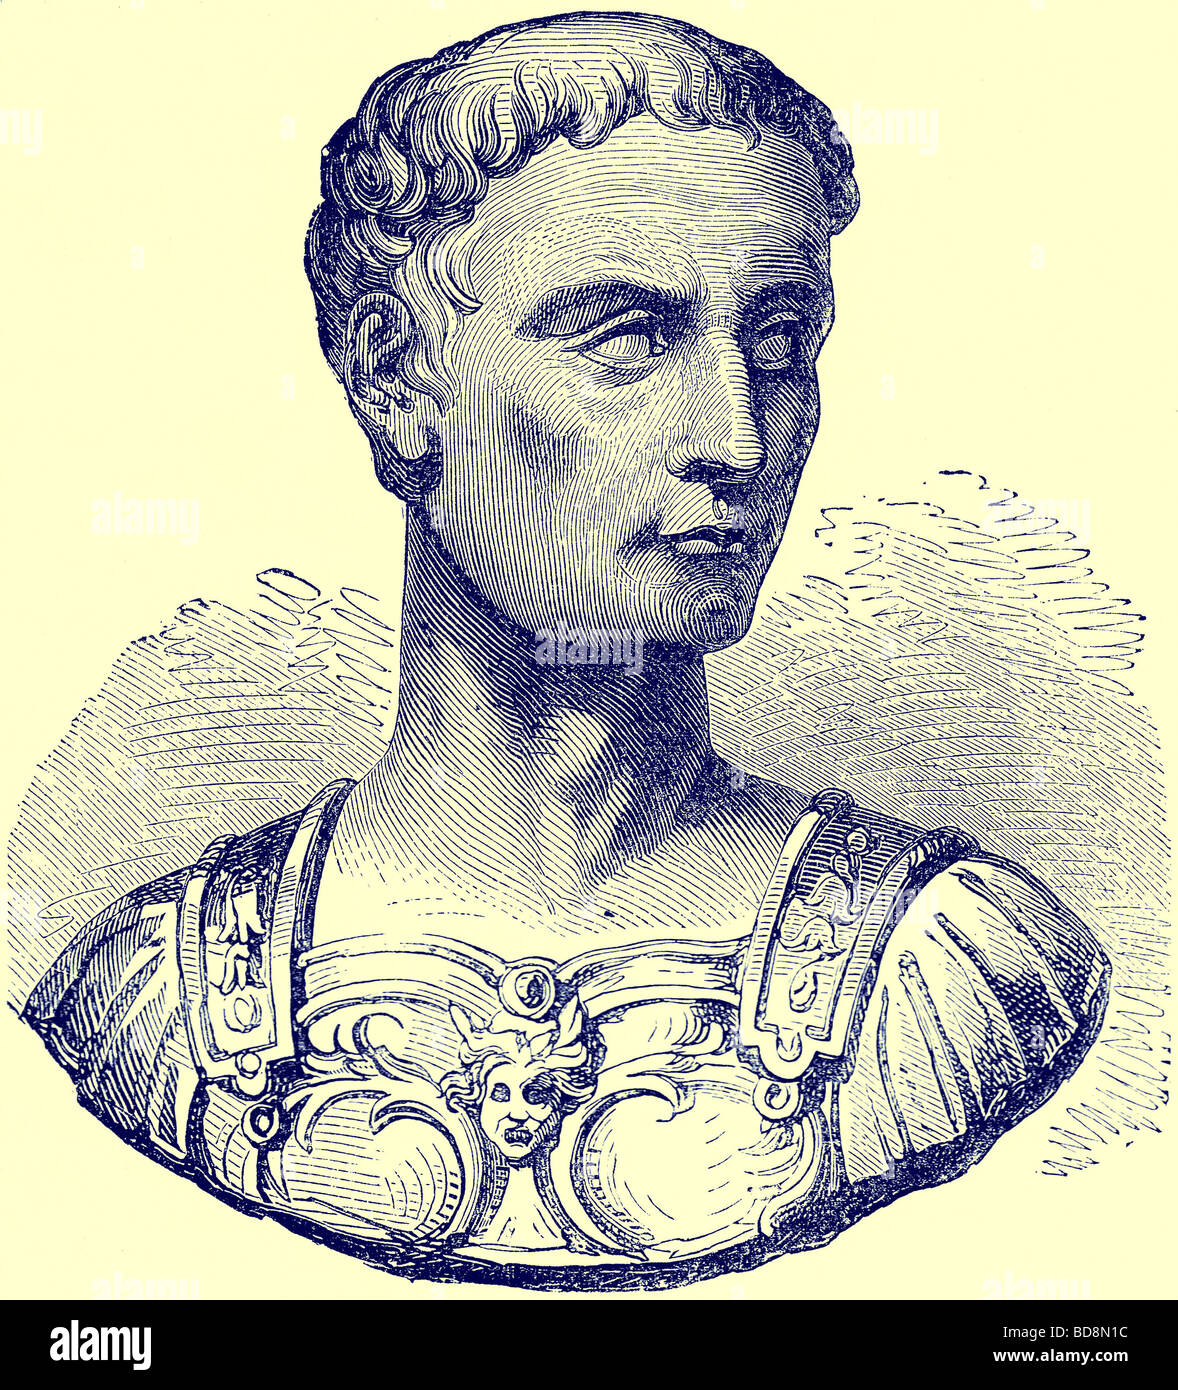 Caius Julius Caesar Illustration from The Illustrated History of the World Ward Lock c 1880 - Stock Image